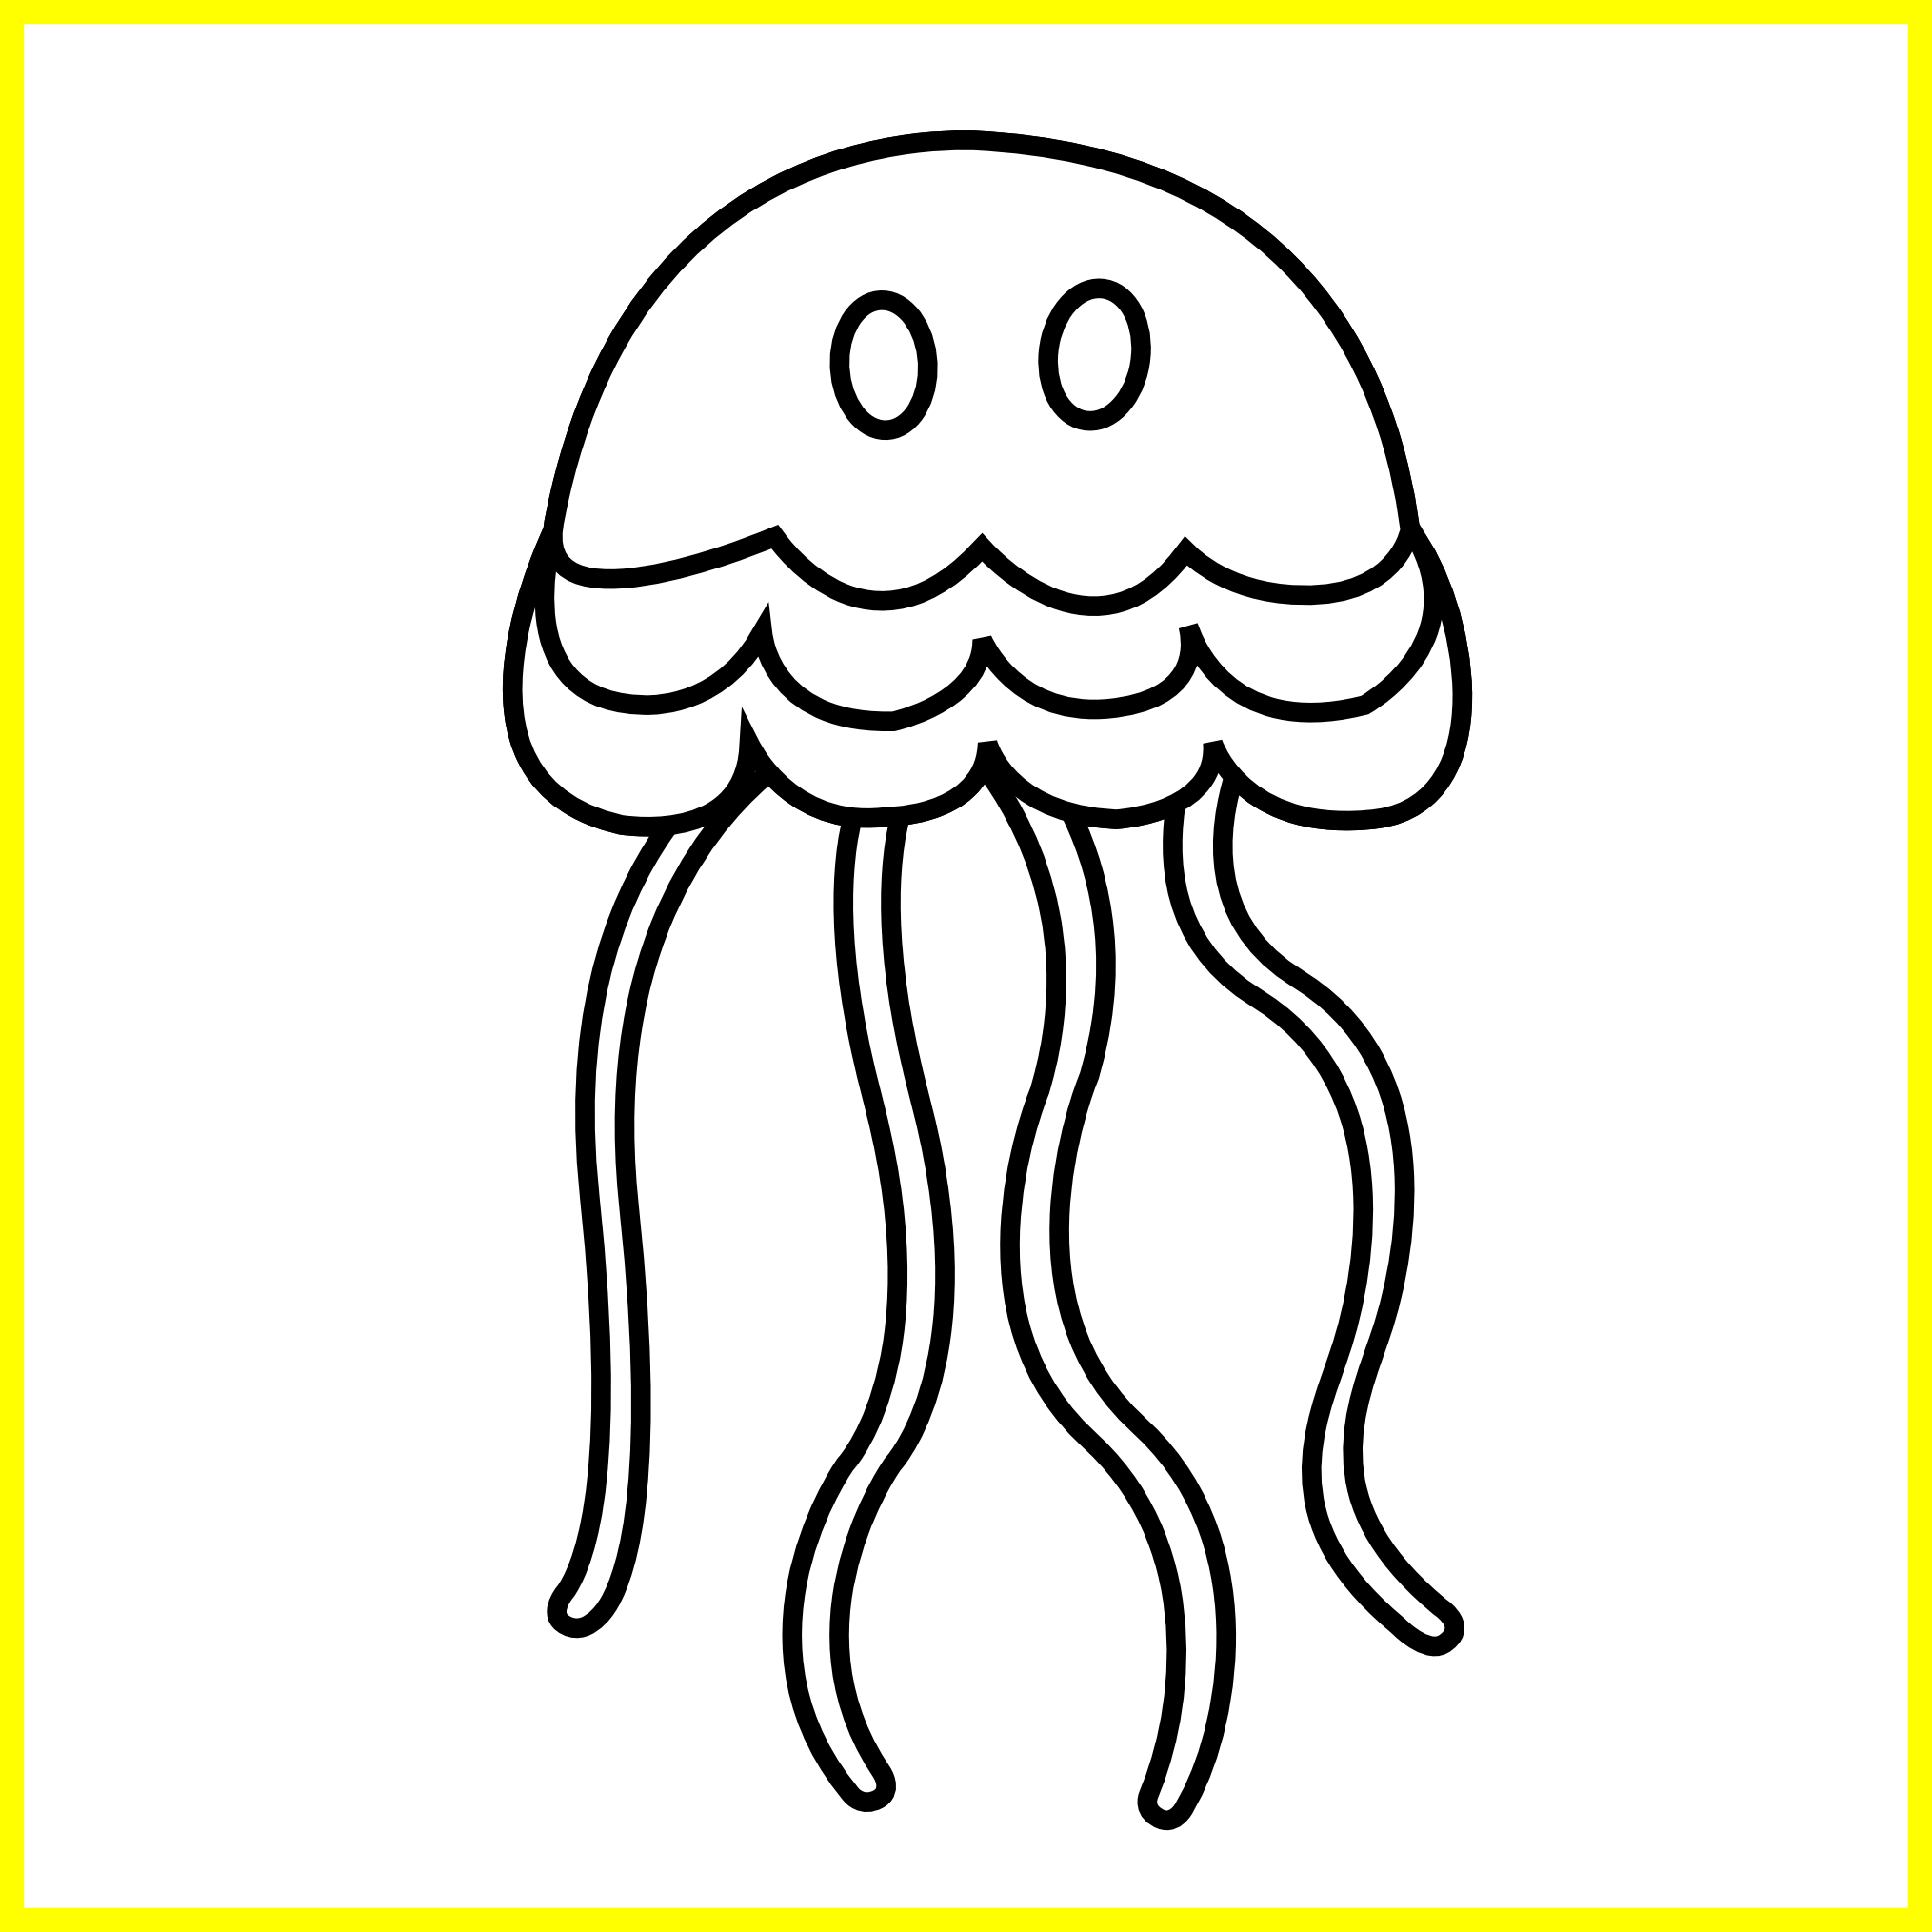 Clipart fish drawing clip art free stock Stunning Jellyfish Black And White Clipart Of Fish Inspiration Ideas ... clip art free stock